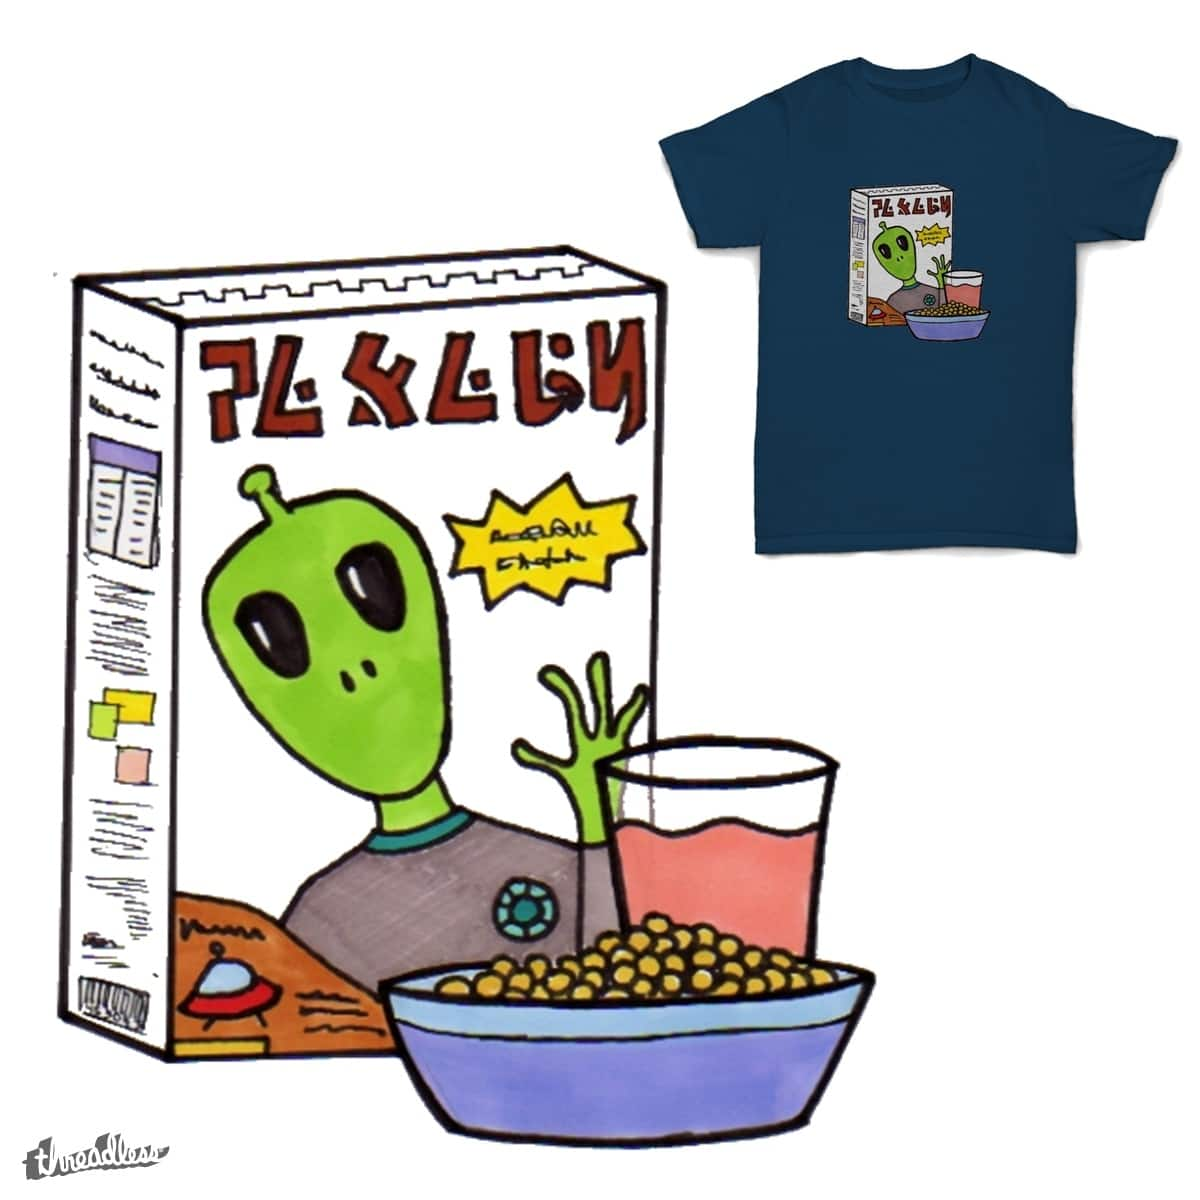 Intergalactic Cereal by mustardlies on Threadless